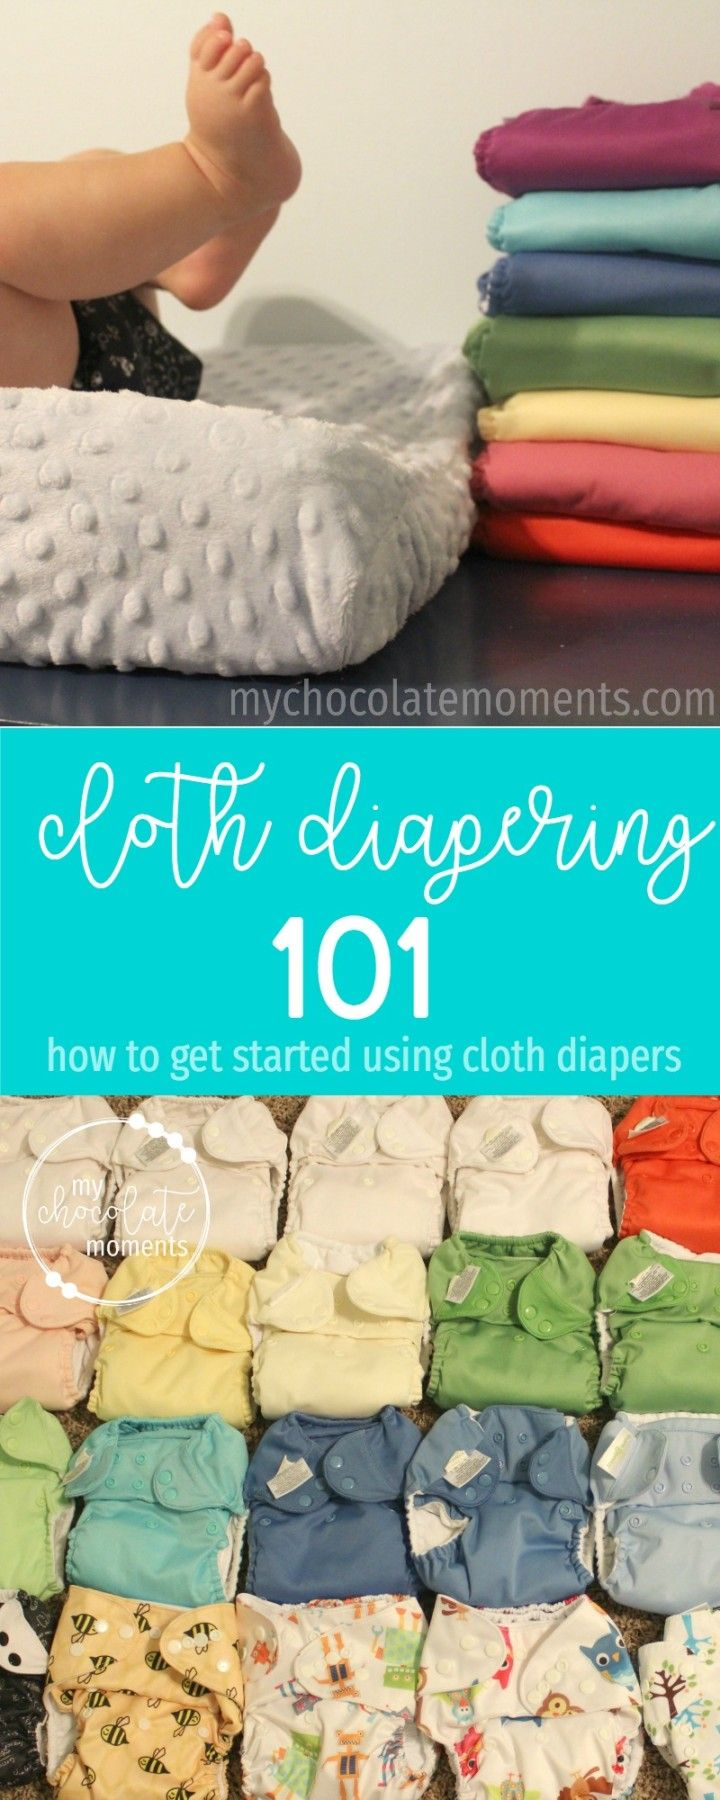 cloth diapering 101 how to get started using cloth diapers | cloth diapering | cloth diaper | crunchy mom | natural parenting